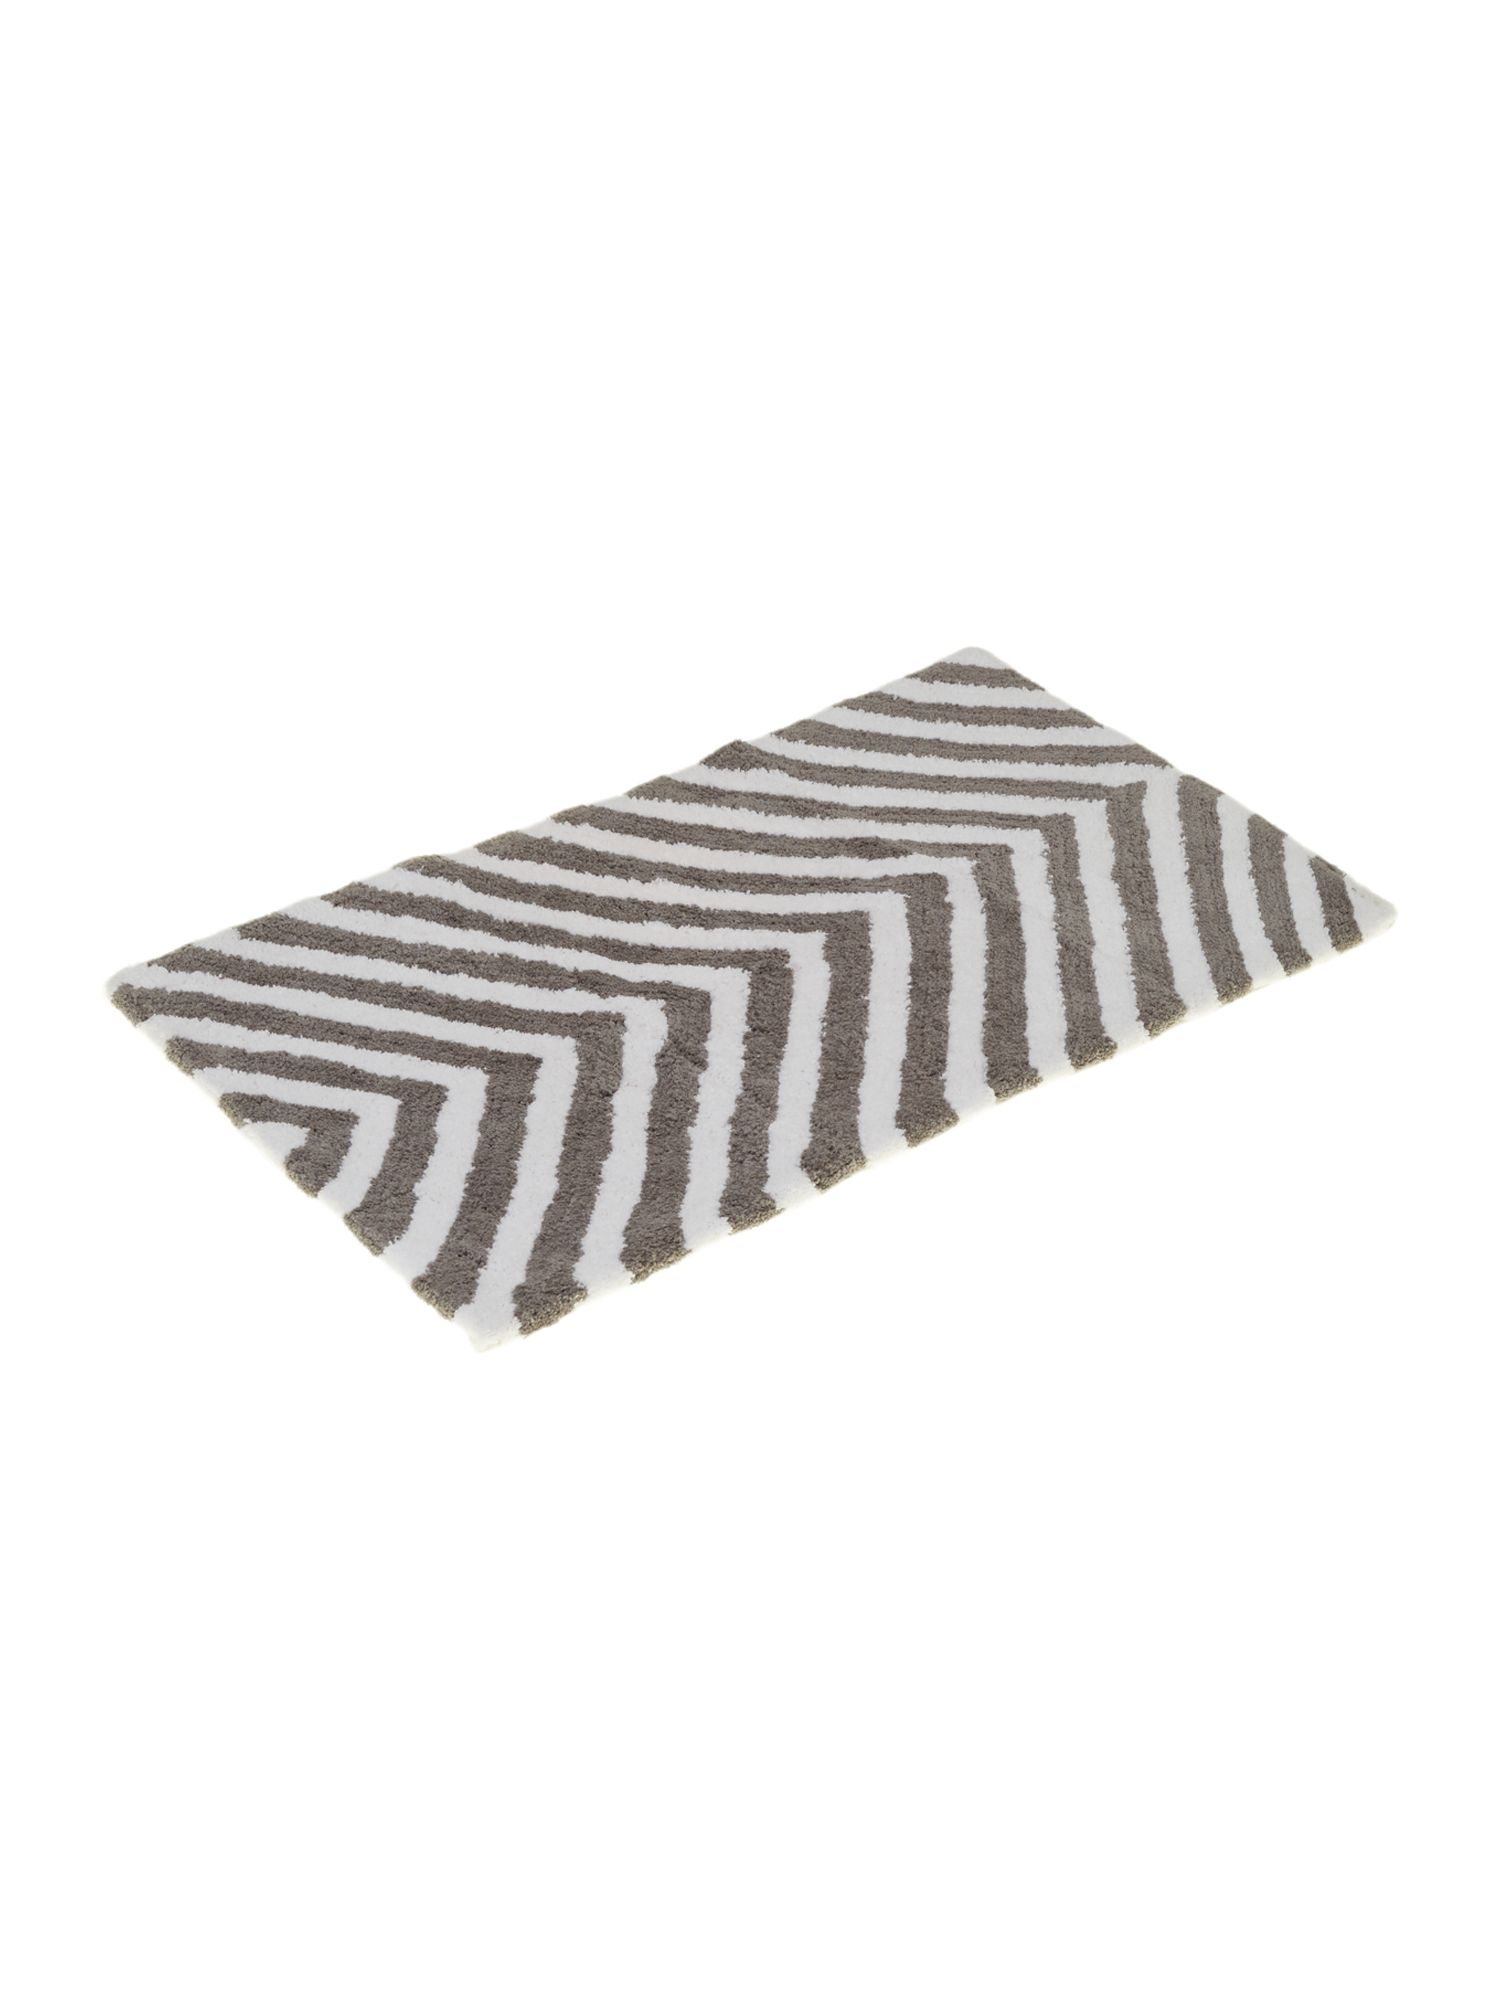 Tribal arrow bathmat